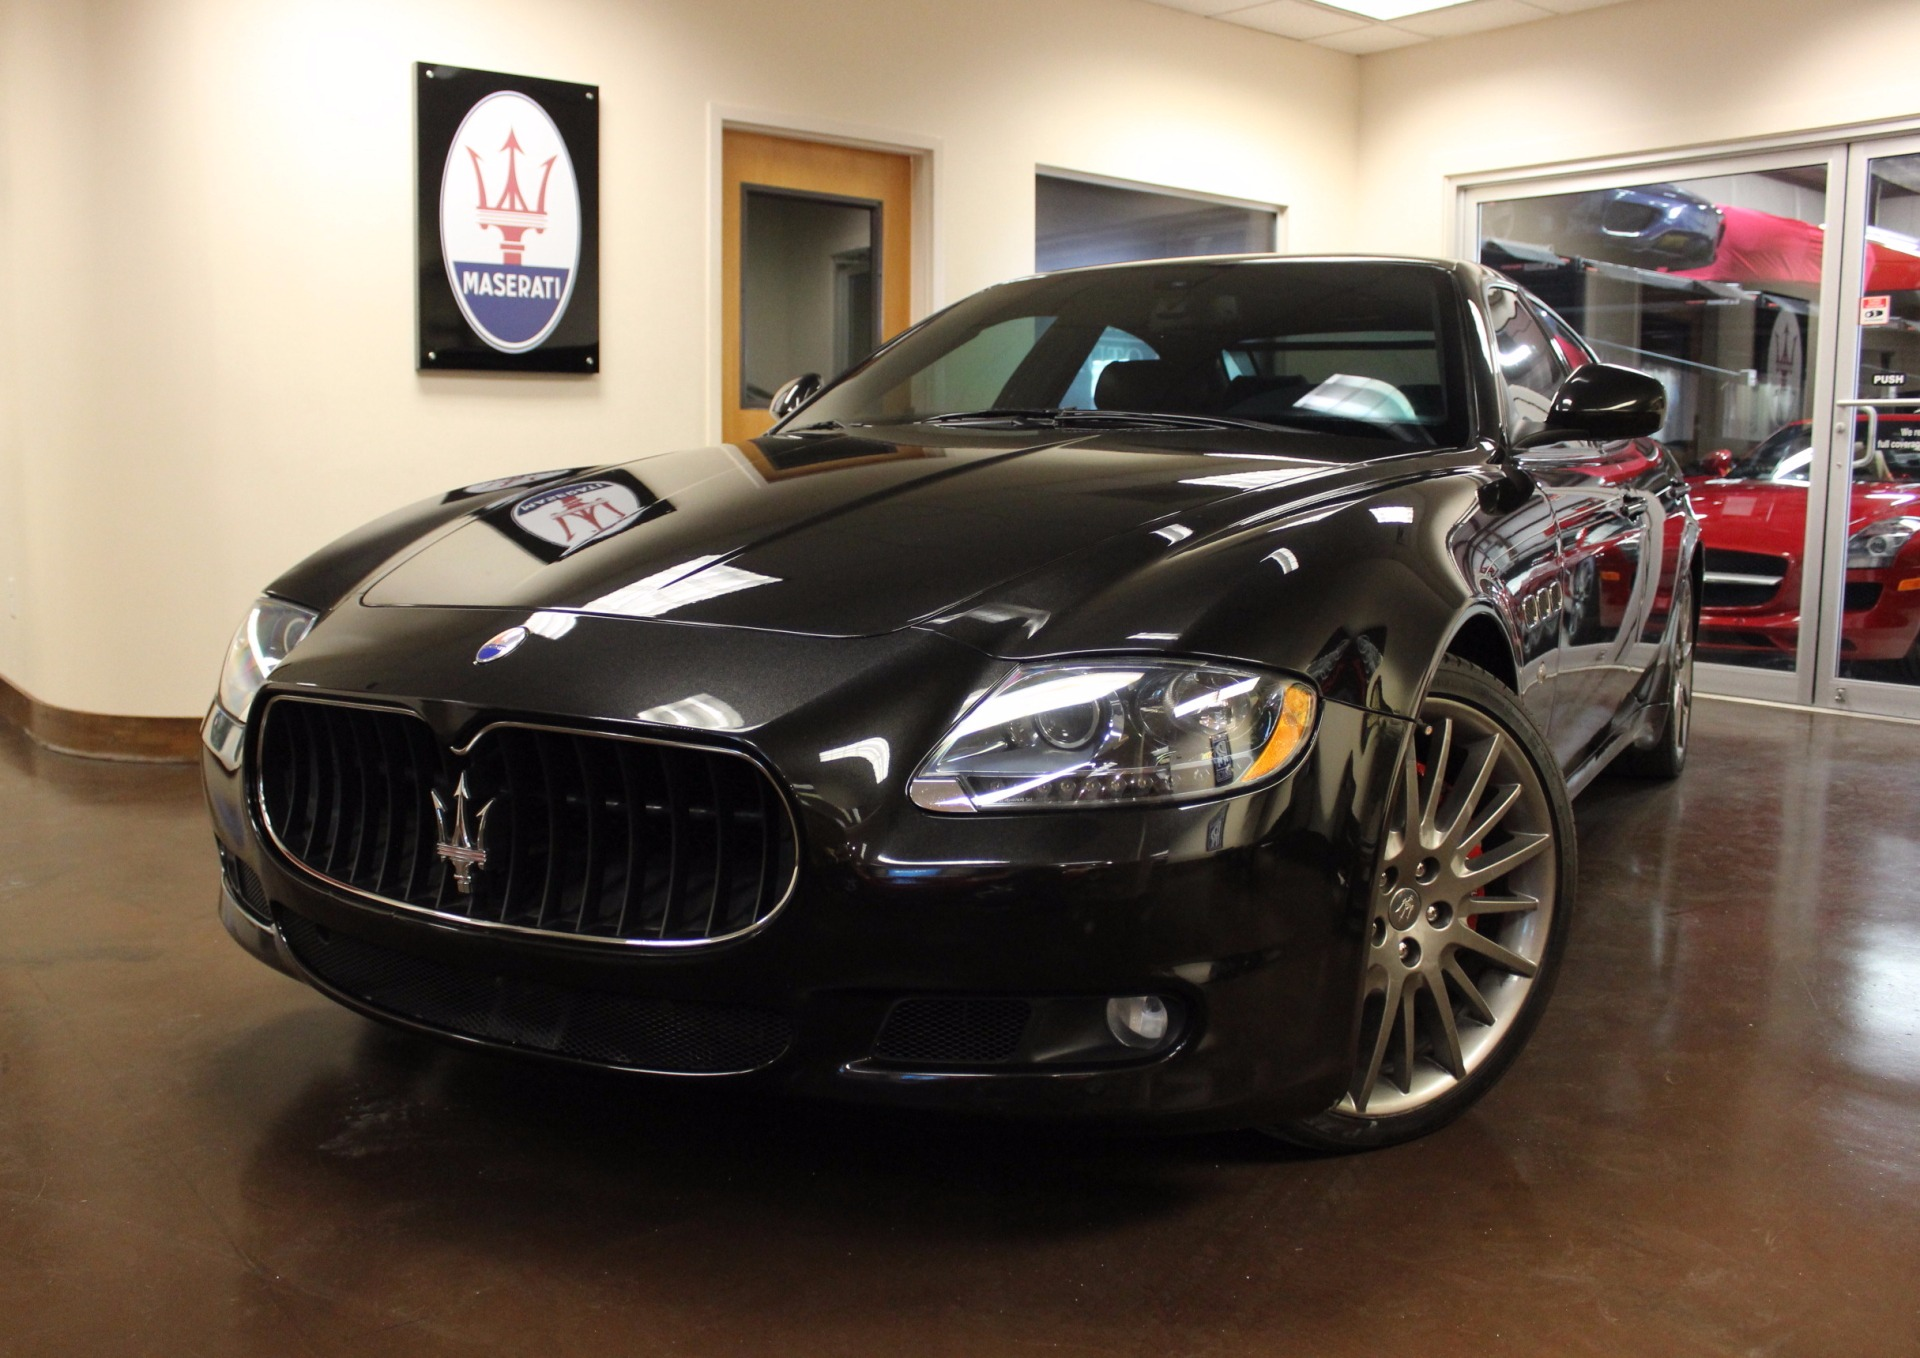 used 2010 maserati quattroporte stock p4183a ultra luxury car from merlin auto group. Black Bedroom Furniture Sets. Home Design Ideas